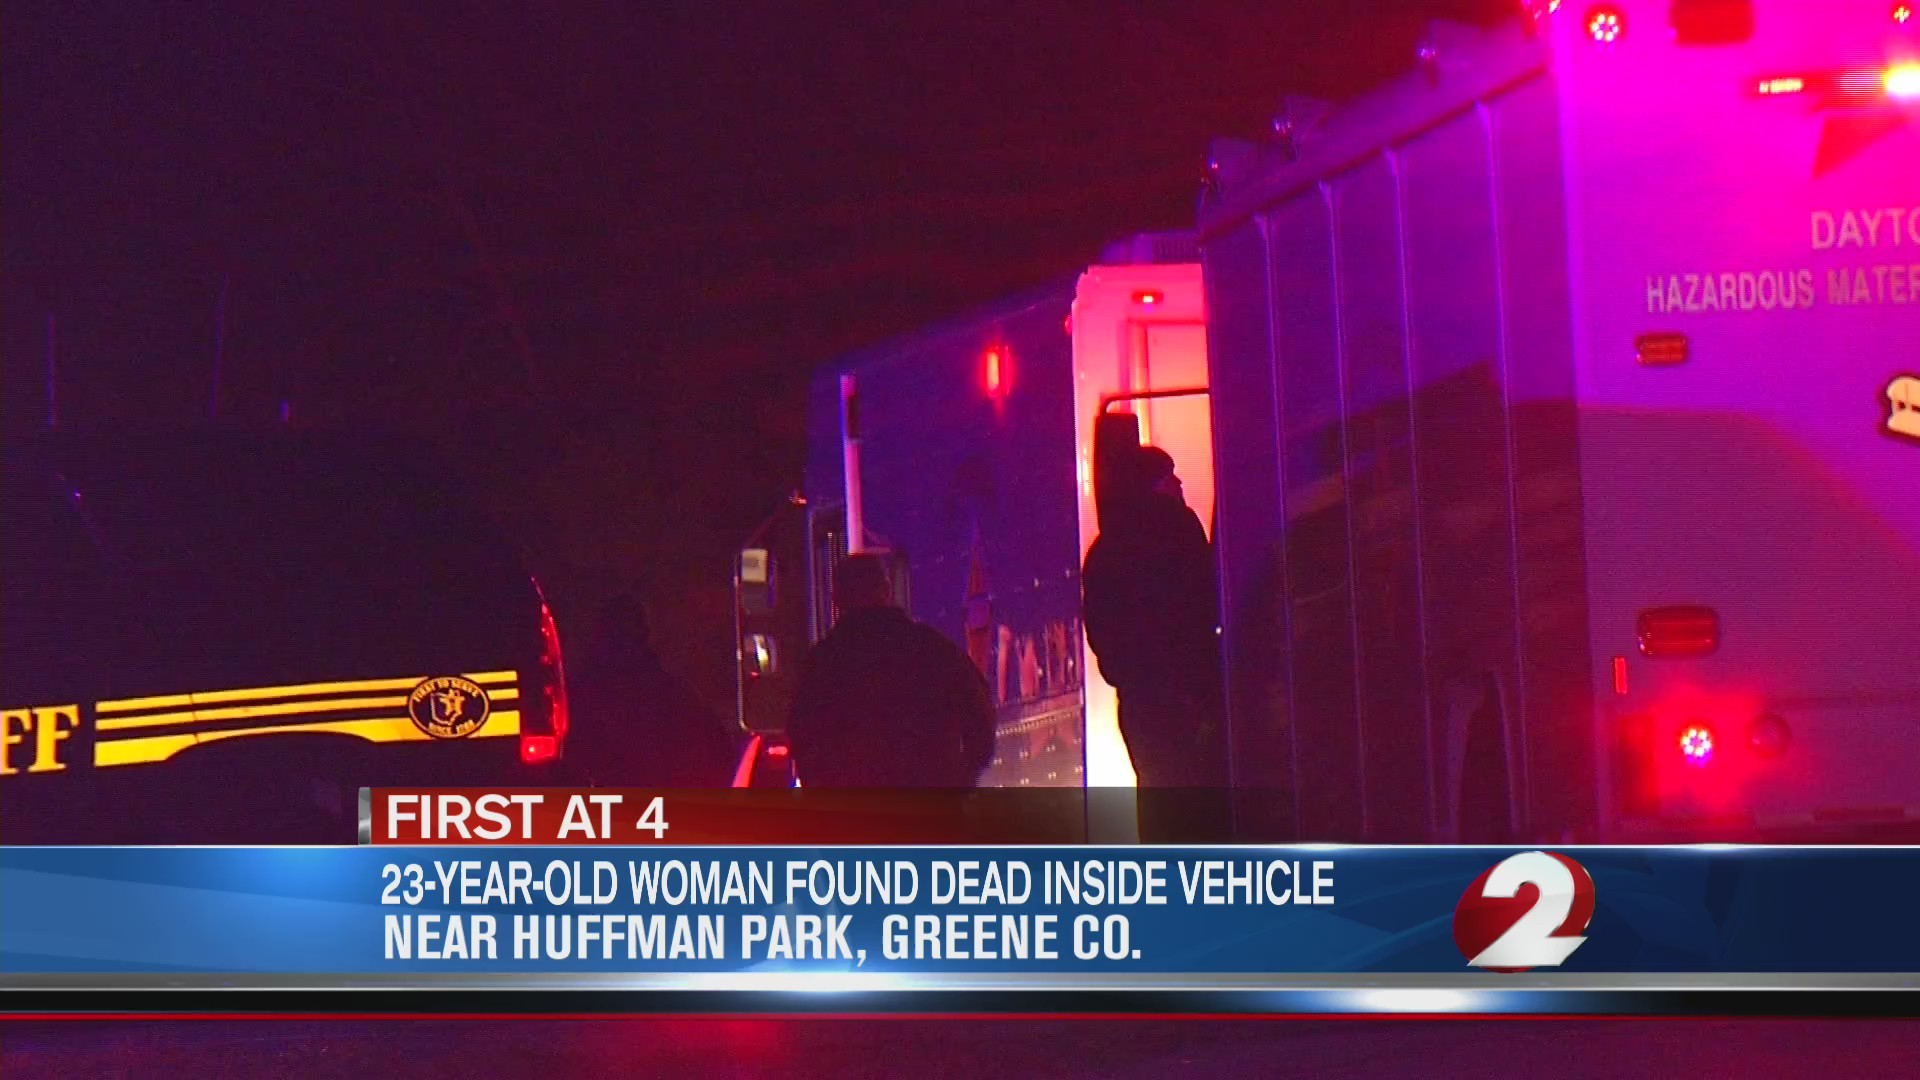 23-year-old woman found dead inside vehicle